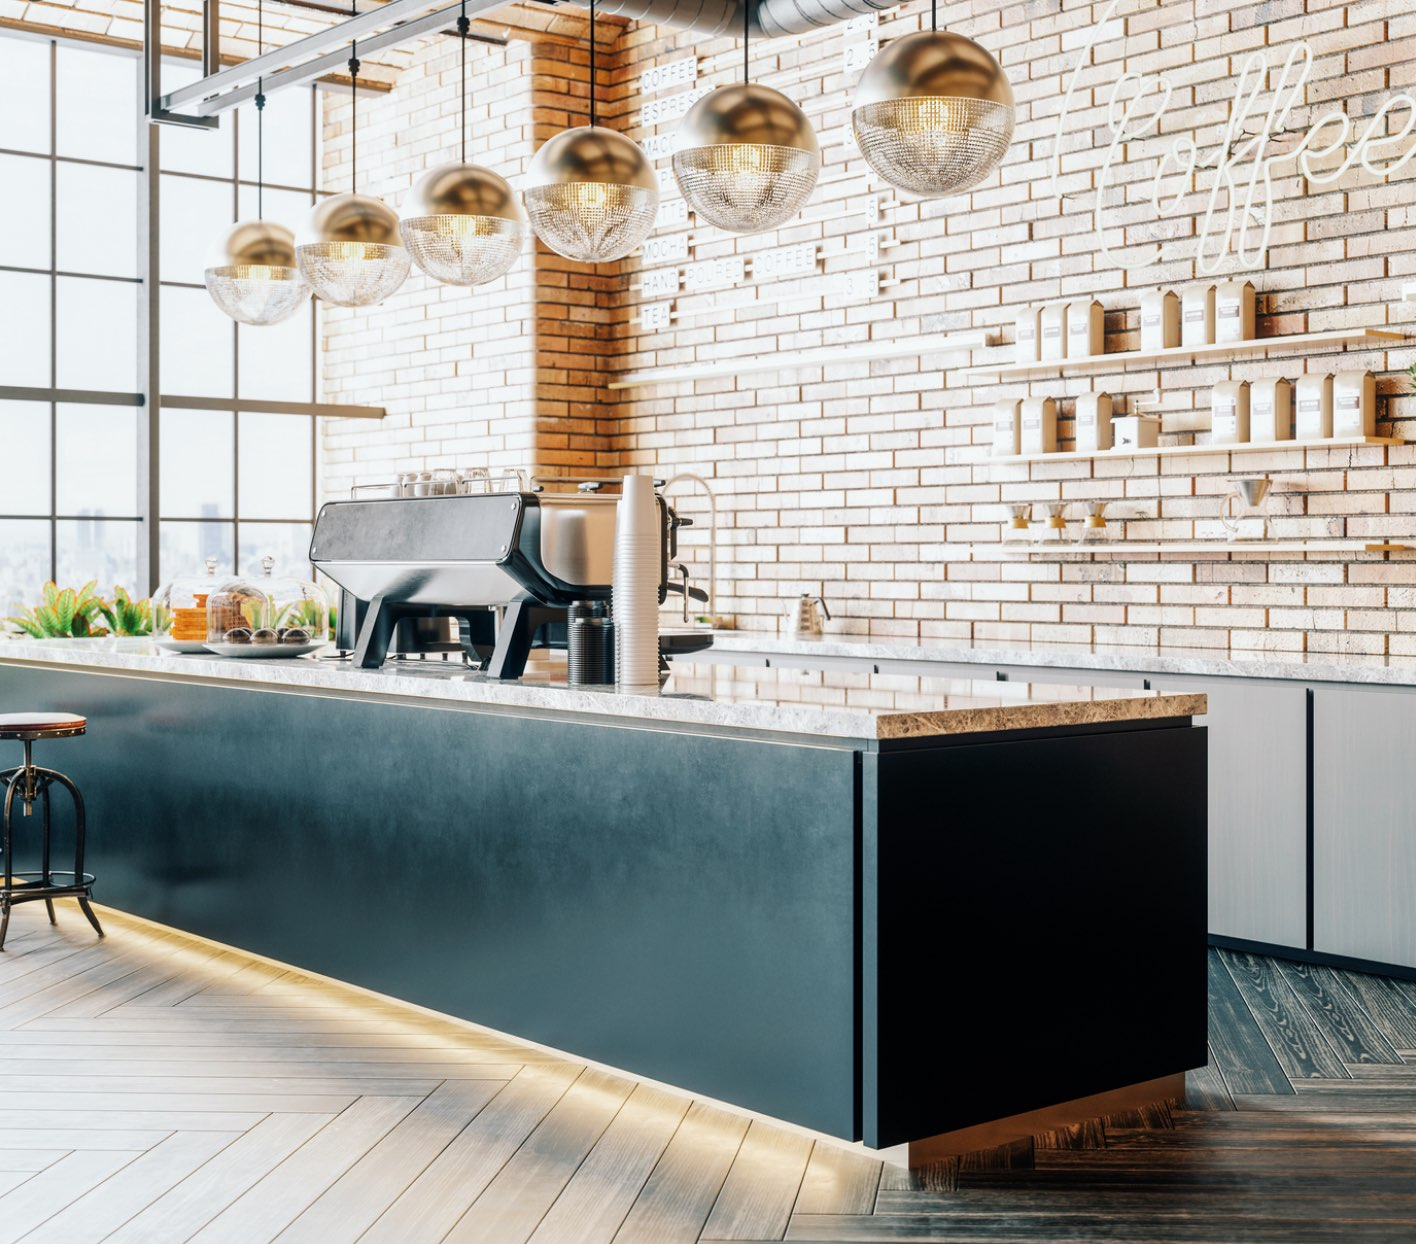 Coffee shop countertop with hanging pendant lights